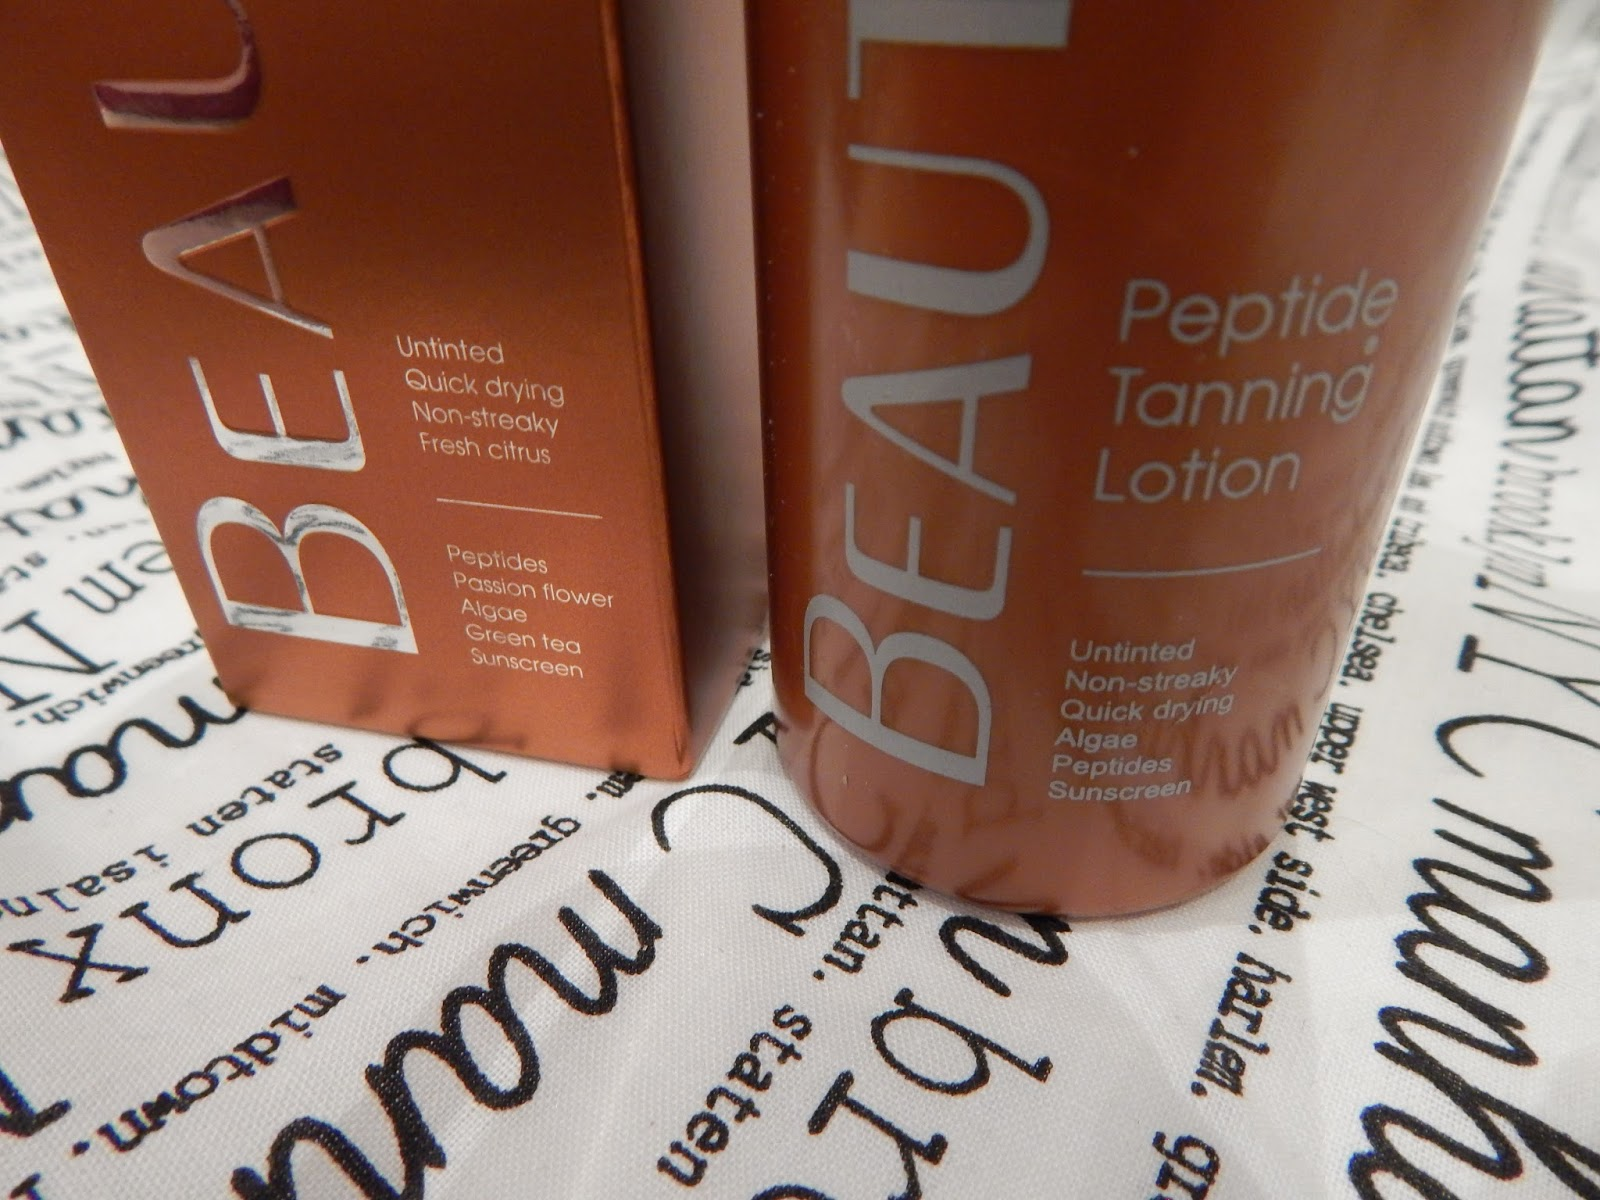 Beautylab Peptide Tanning Lotion